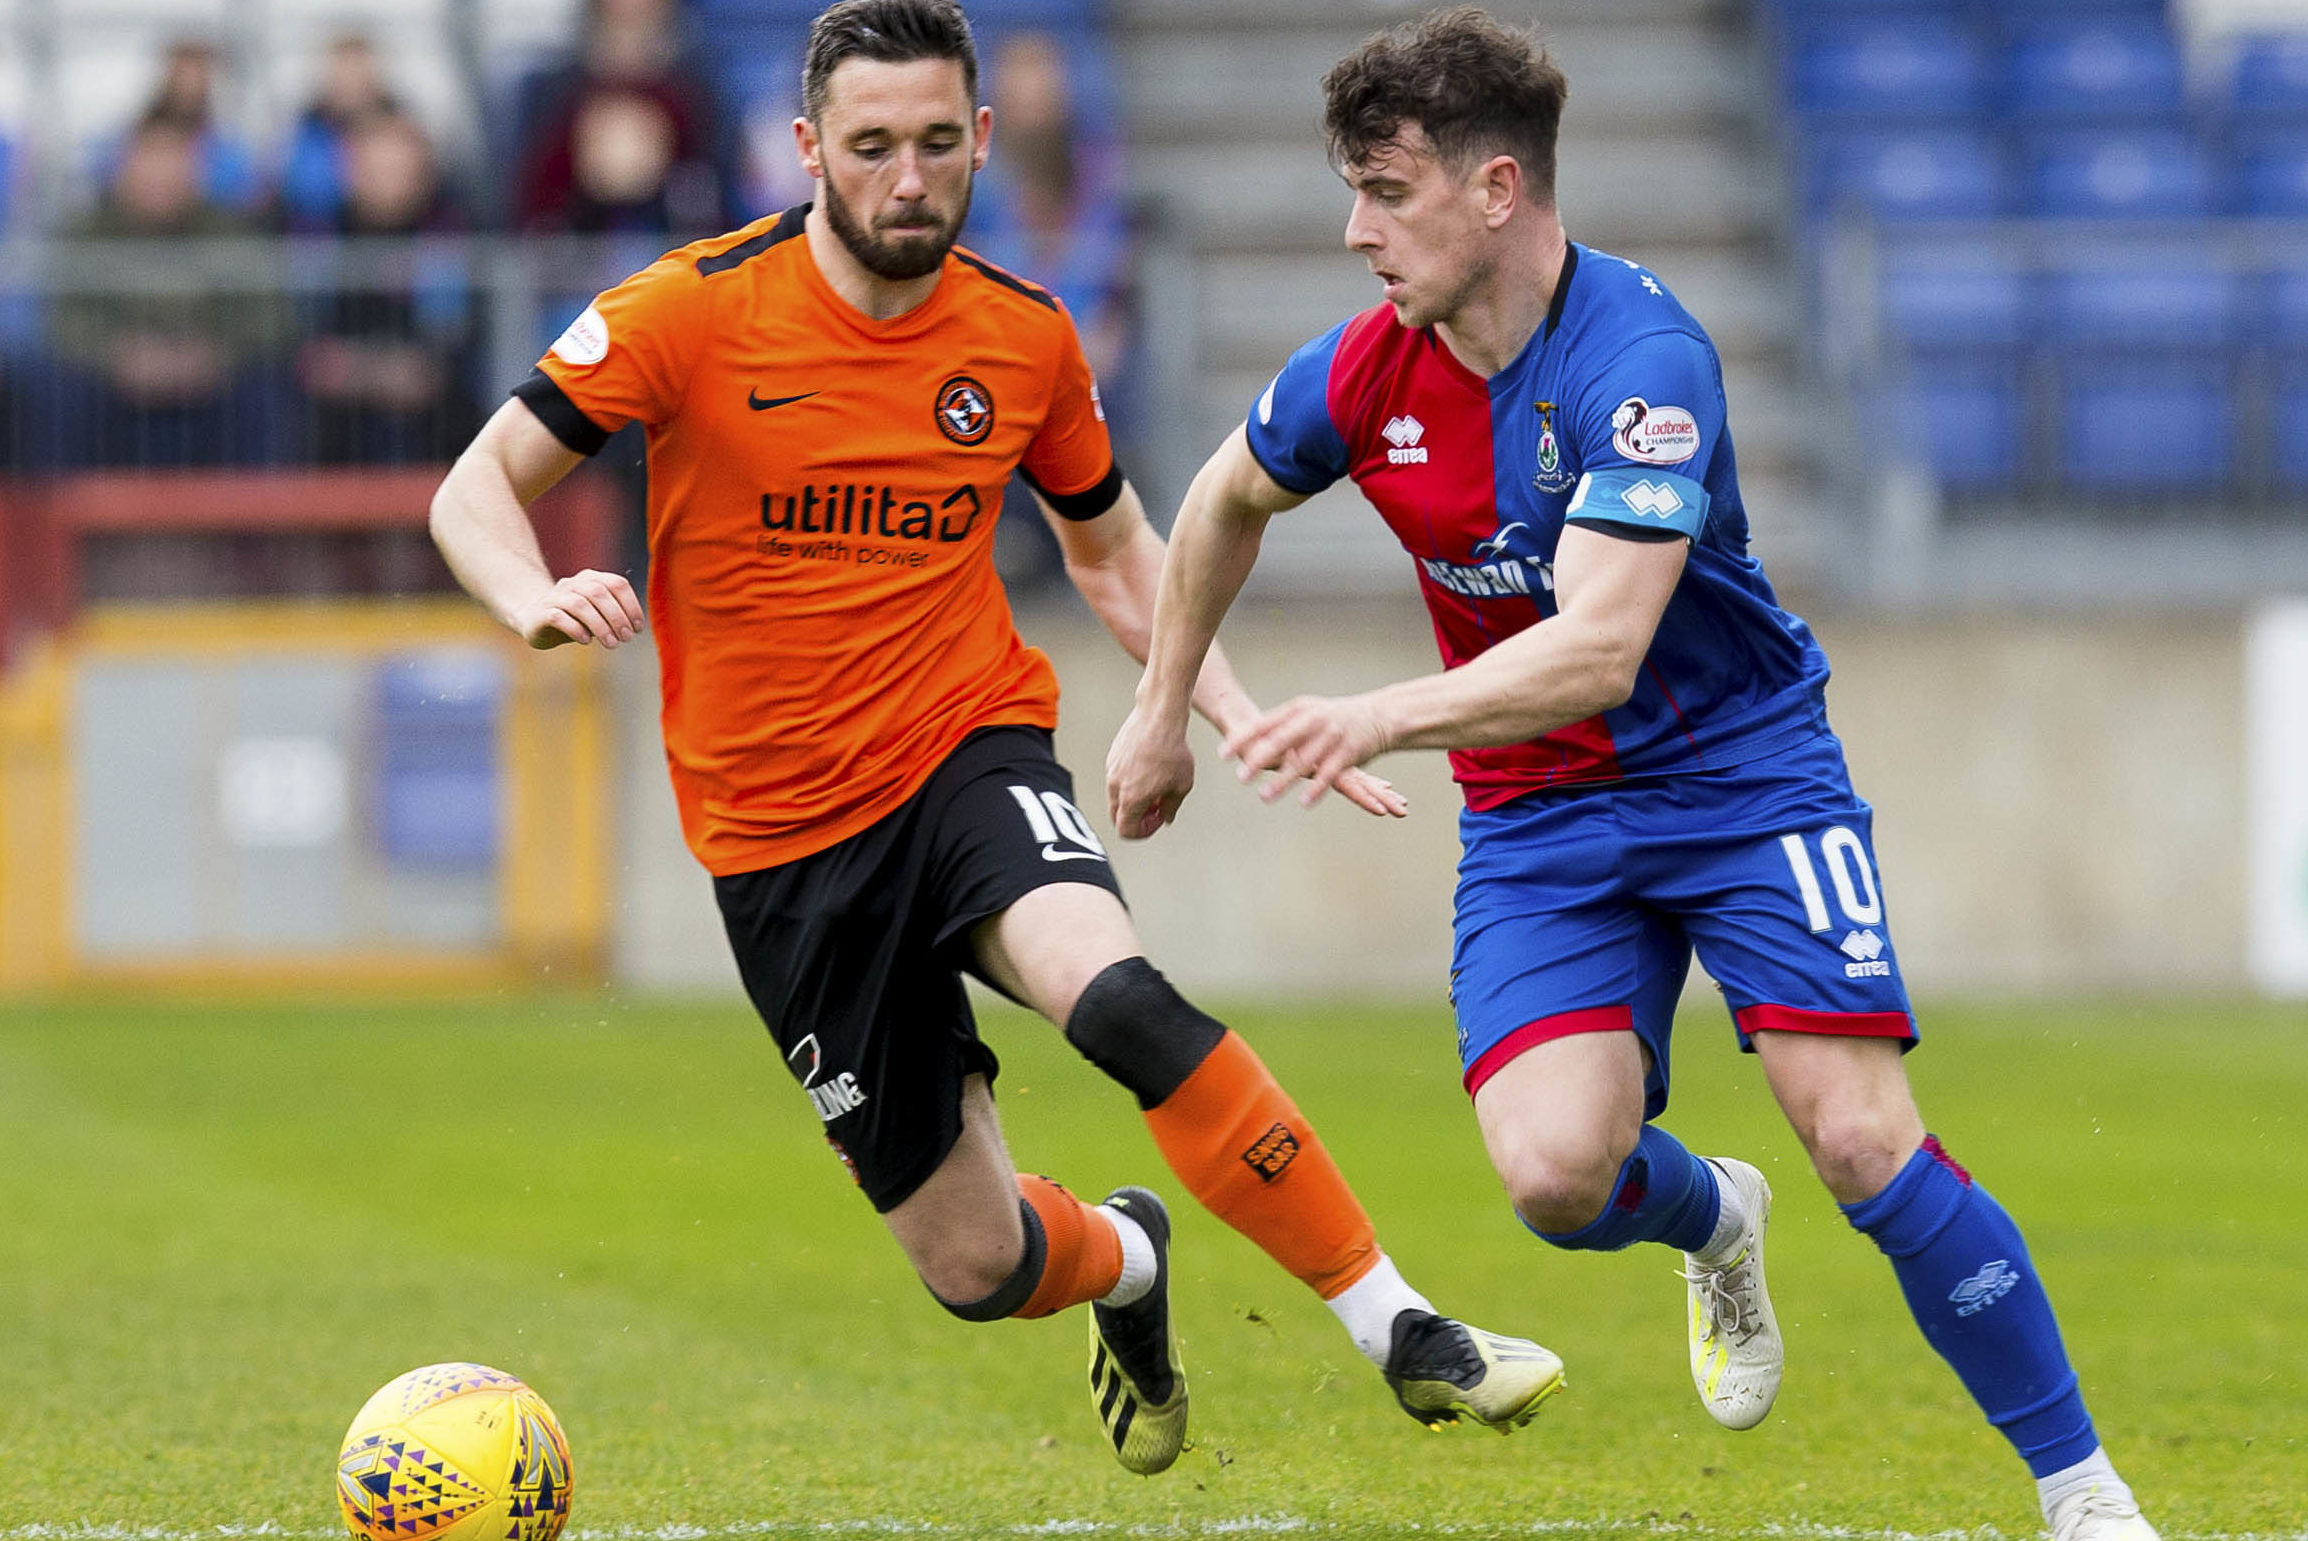 Aaron Doran, right, in action with United frontman Nicky Clark.